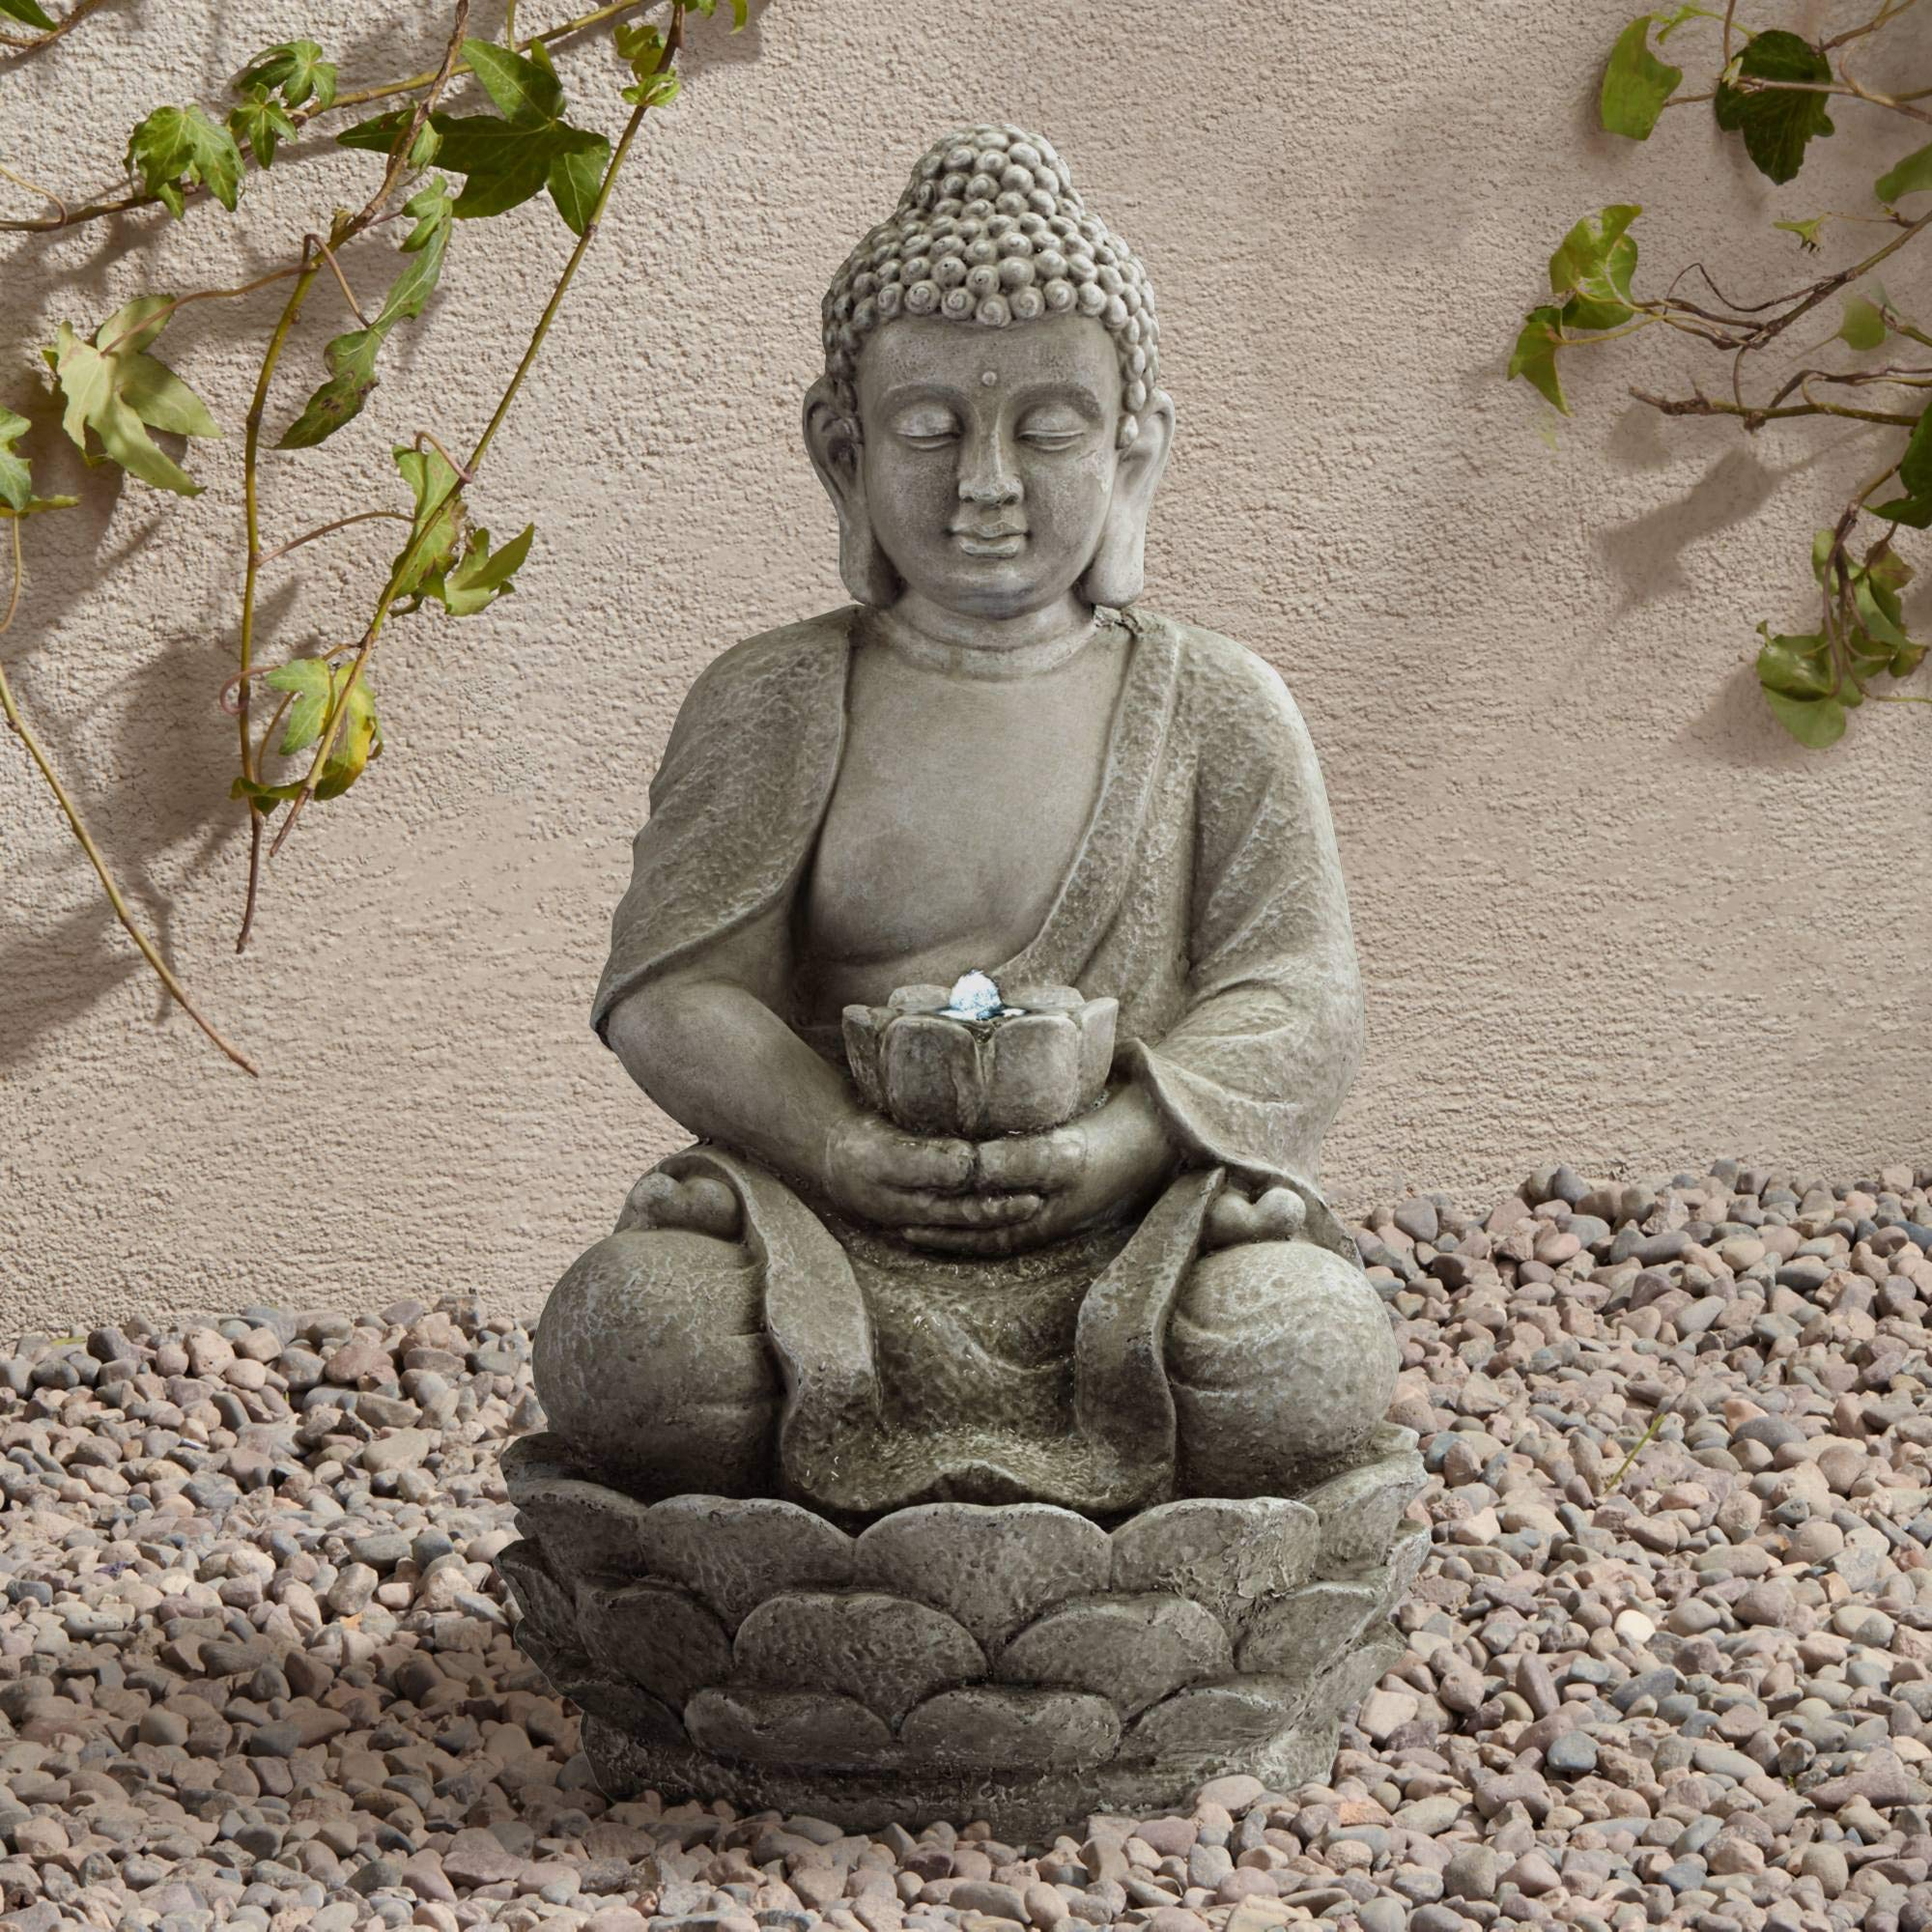 John Timberland Sitting Buddha Asian Zen Outdoor Water Fountain with Light LED 22'' High for Table Desk Yard Garden Patio Deck Home Relaxation